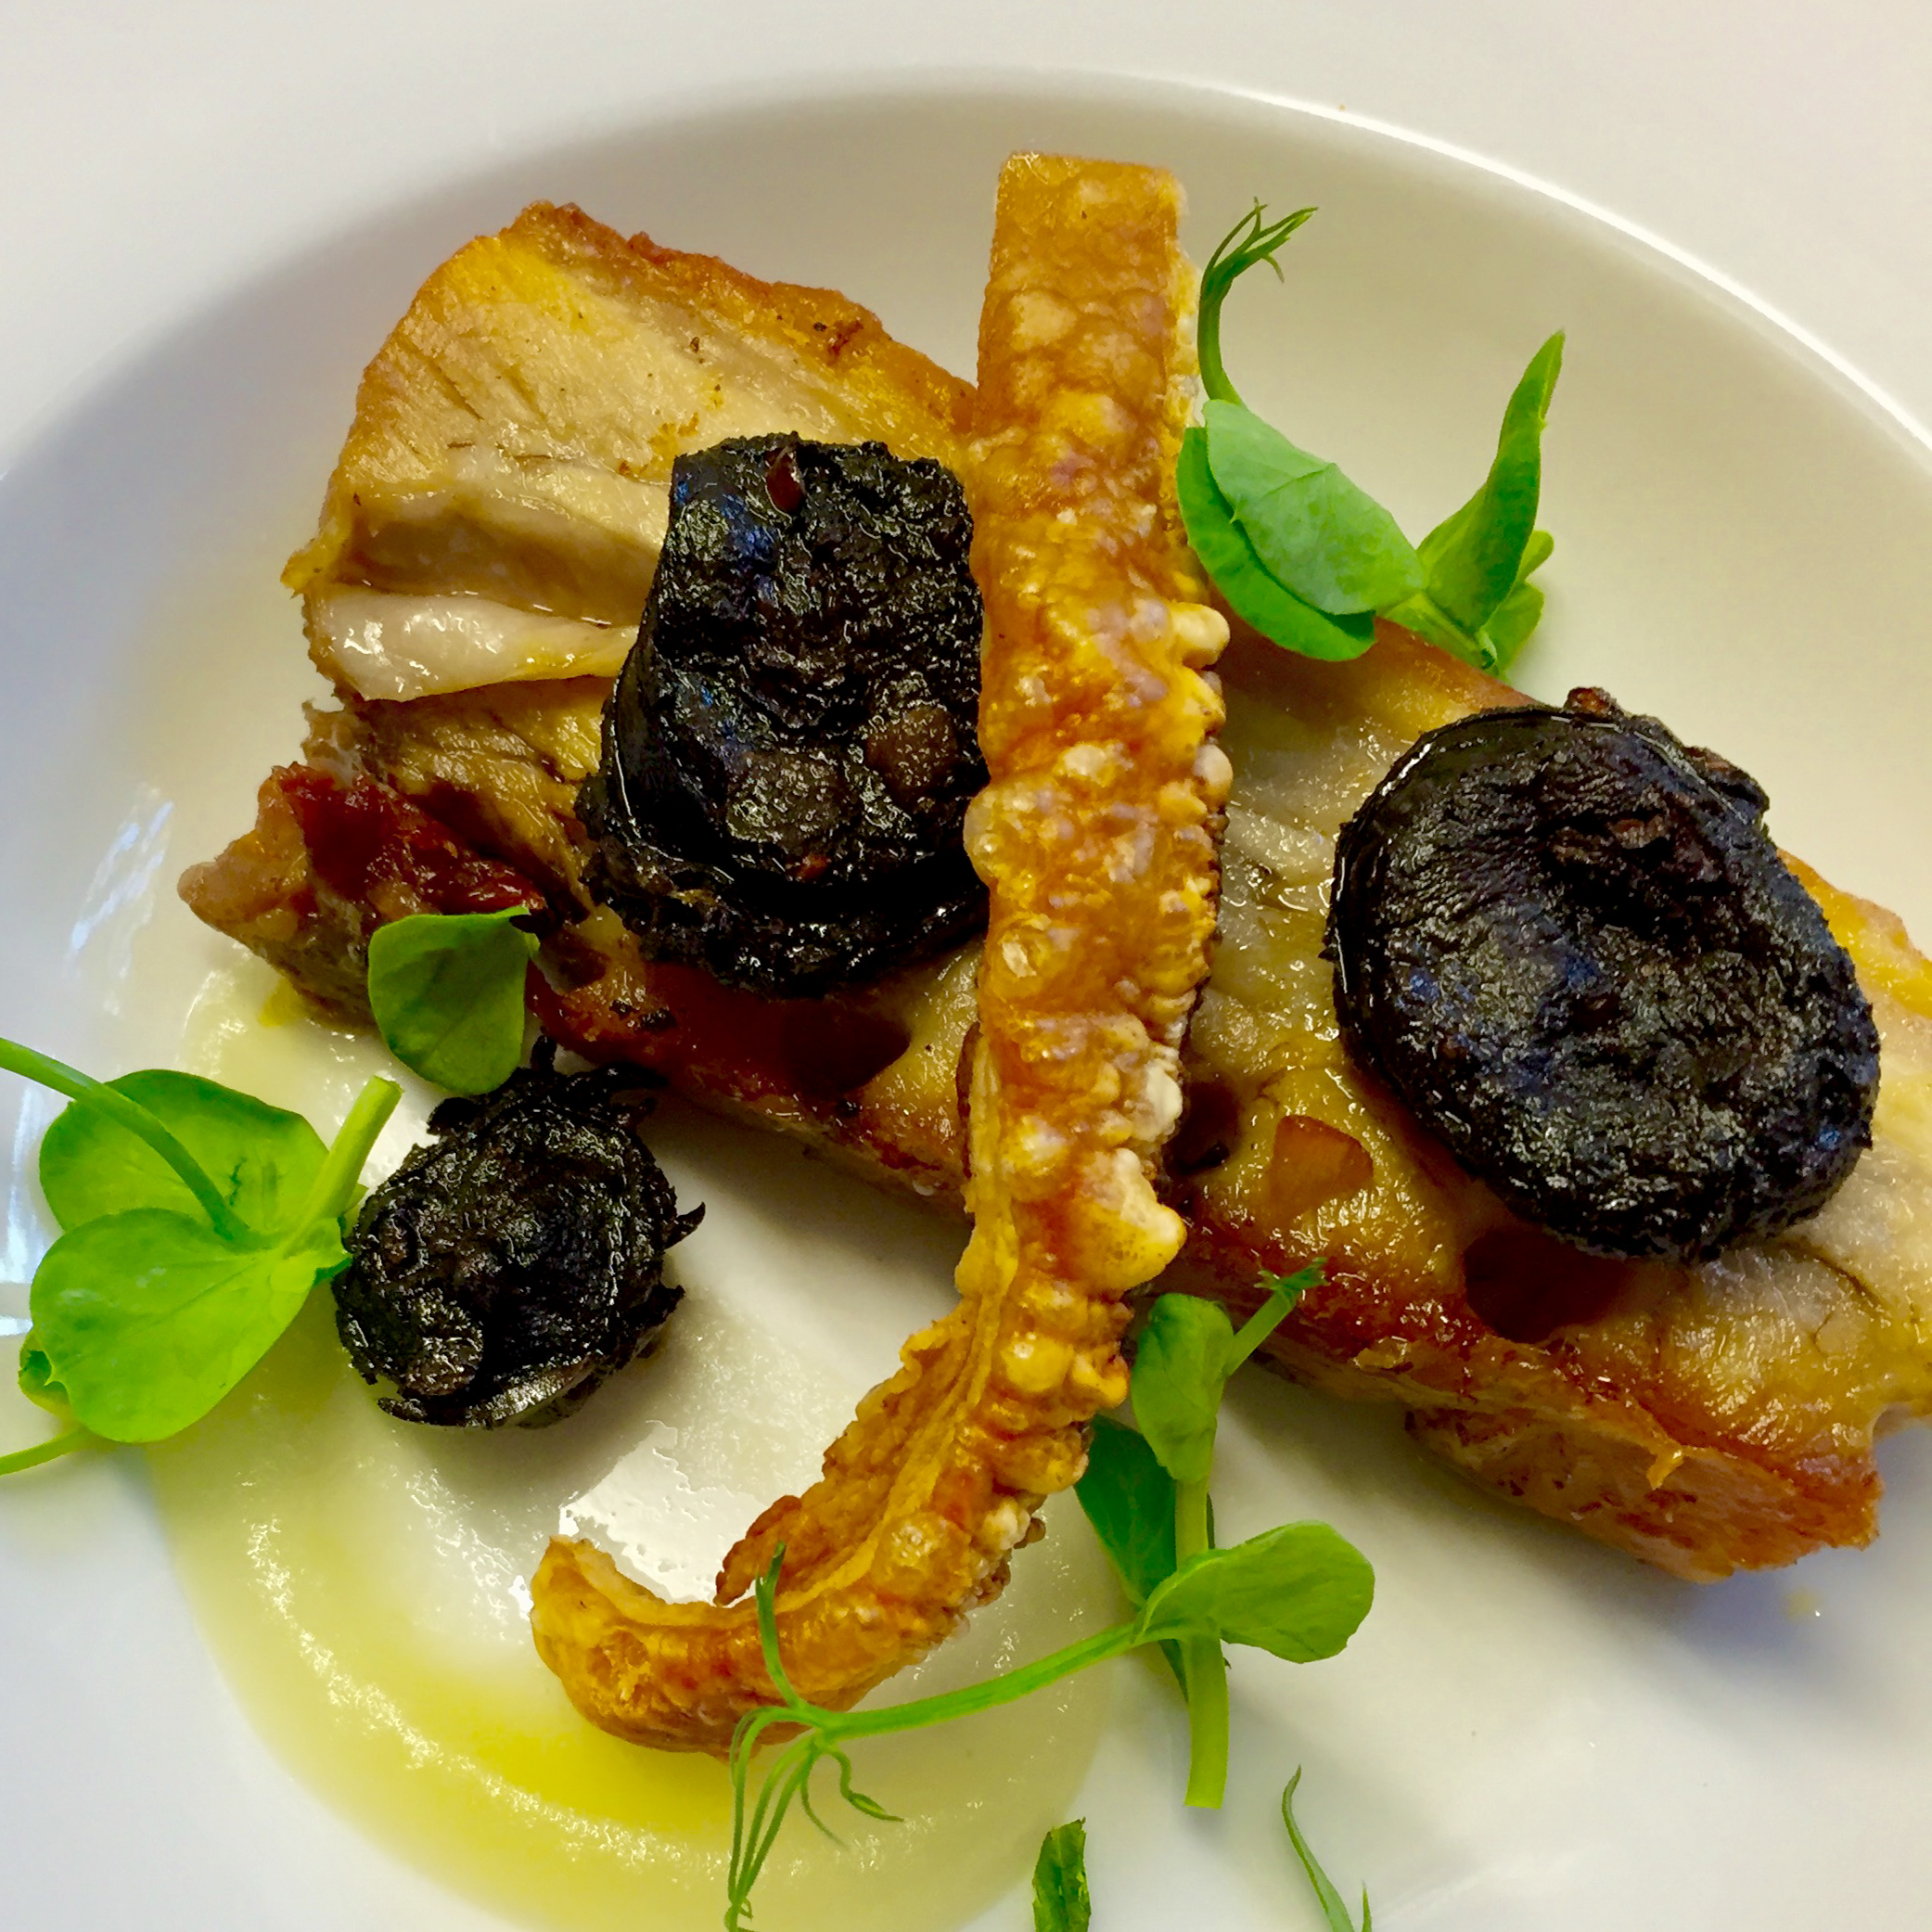 Confit_pork_belly_served_with_apple_pureé,_morcilla,_pea_shoots_&_a_white_port_sauce_(GF